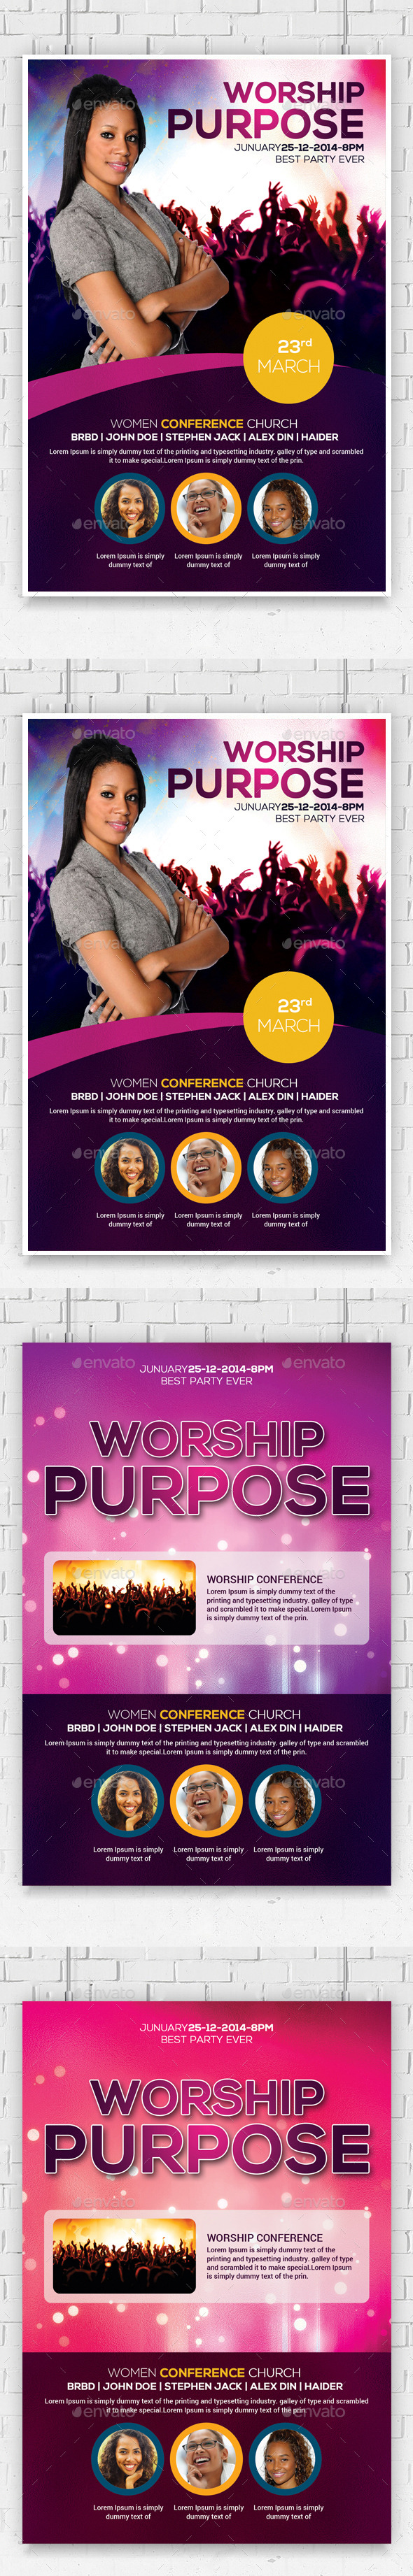 Women Conference Flyers Bundle - Church Flyers